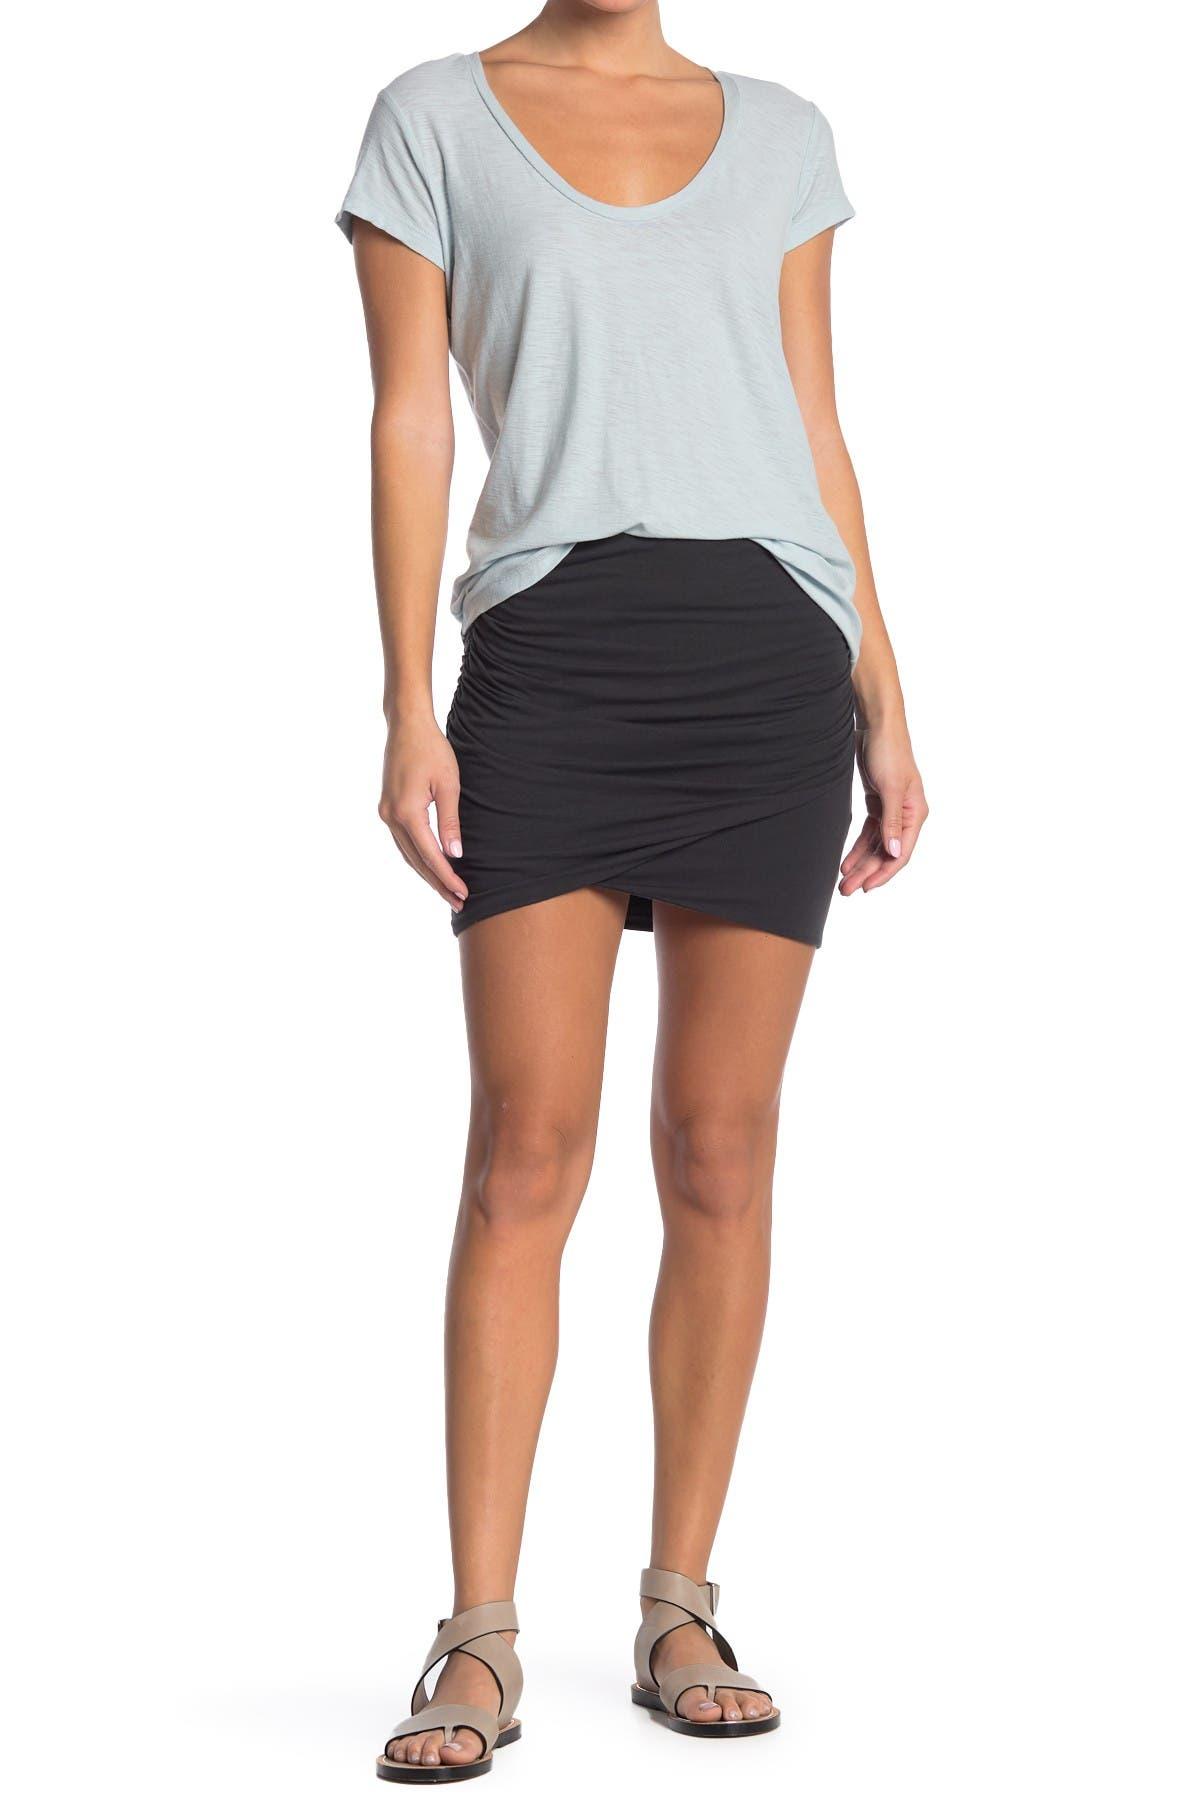 Image of James Perse Wrap Bodycon Skirt